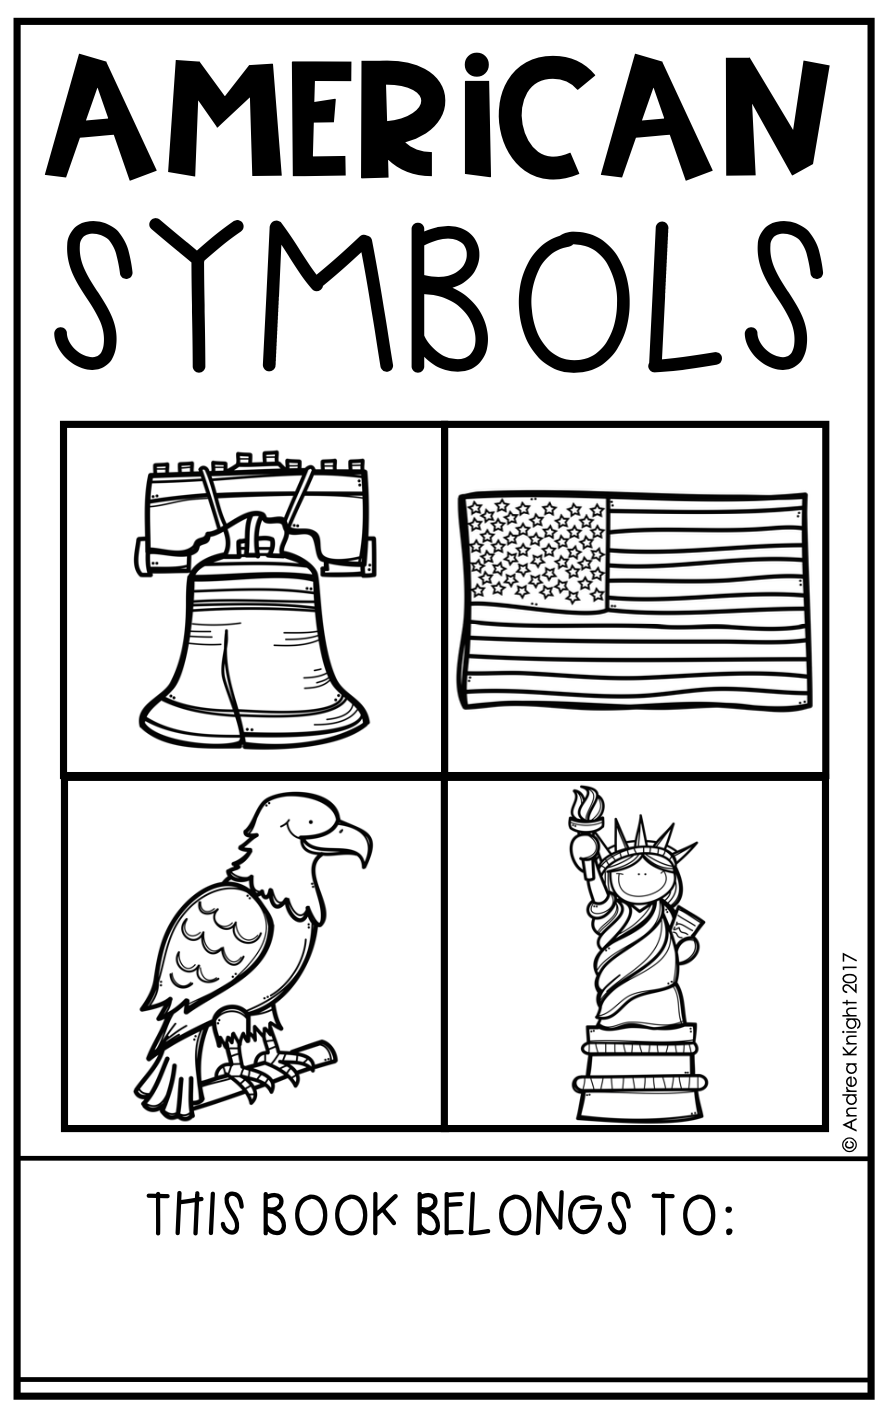 hight resolution of American Symbols Book for Children   American symbols book